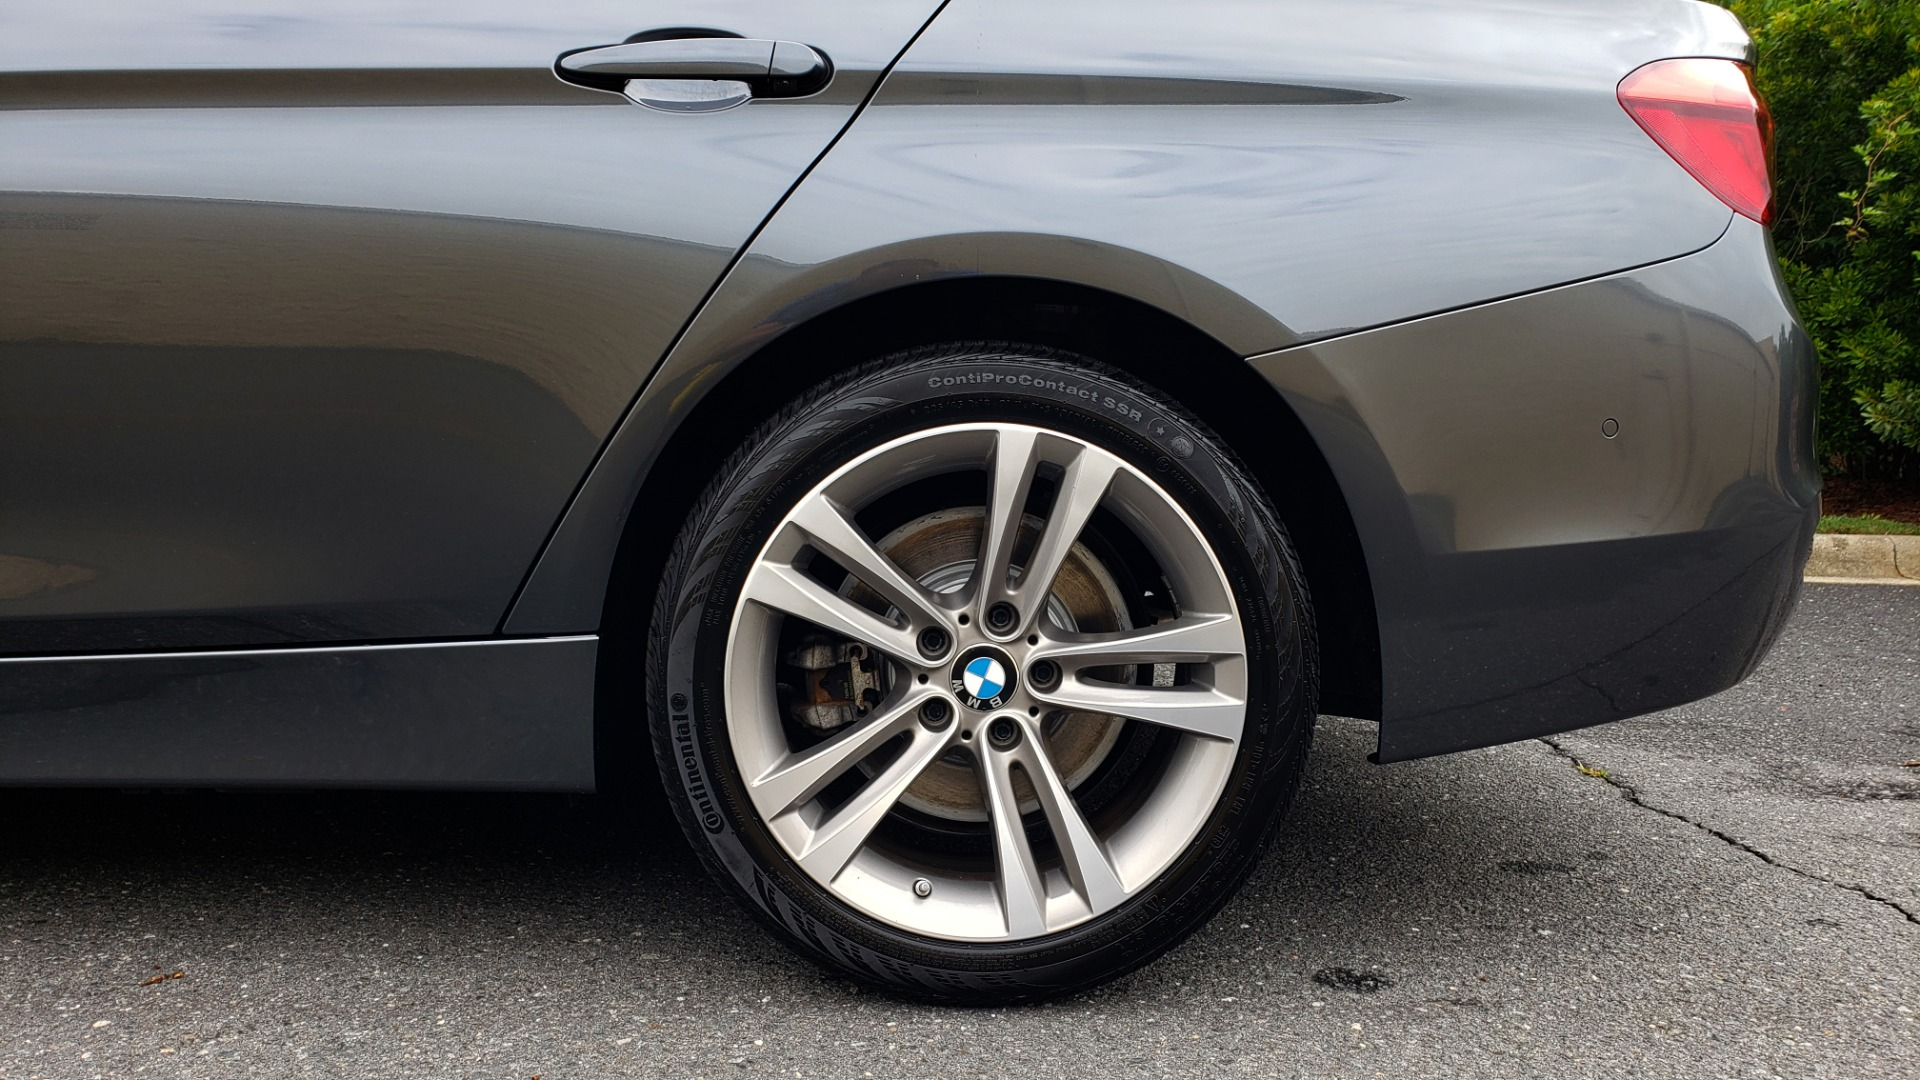 Used 2017 BMW 3 SERIES 340I XDRIVE SPORT / NAV / DRVR ASST PLUS / PARK ASST / CLD WTHR for sale $28,995 at Formula Imports in Charlotte NC 28227 79